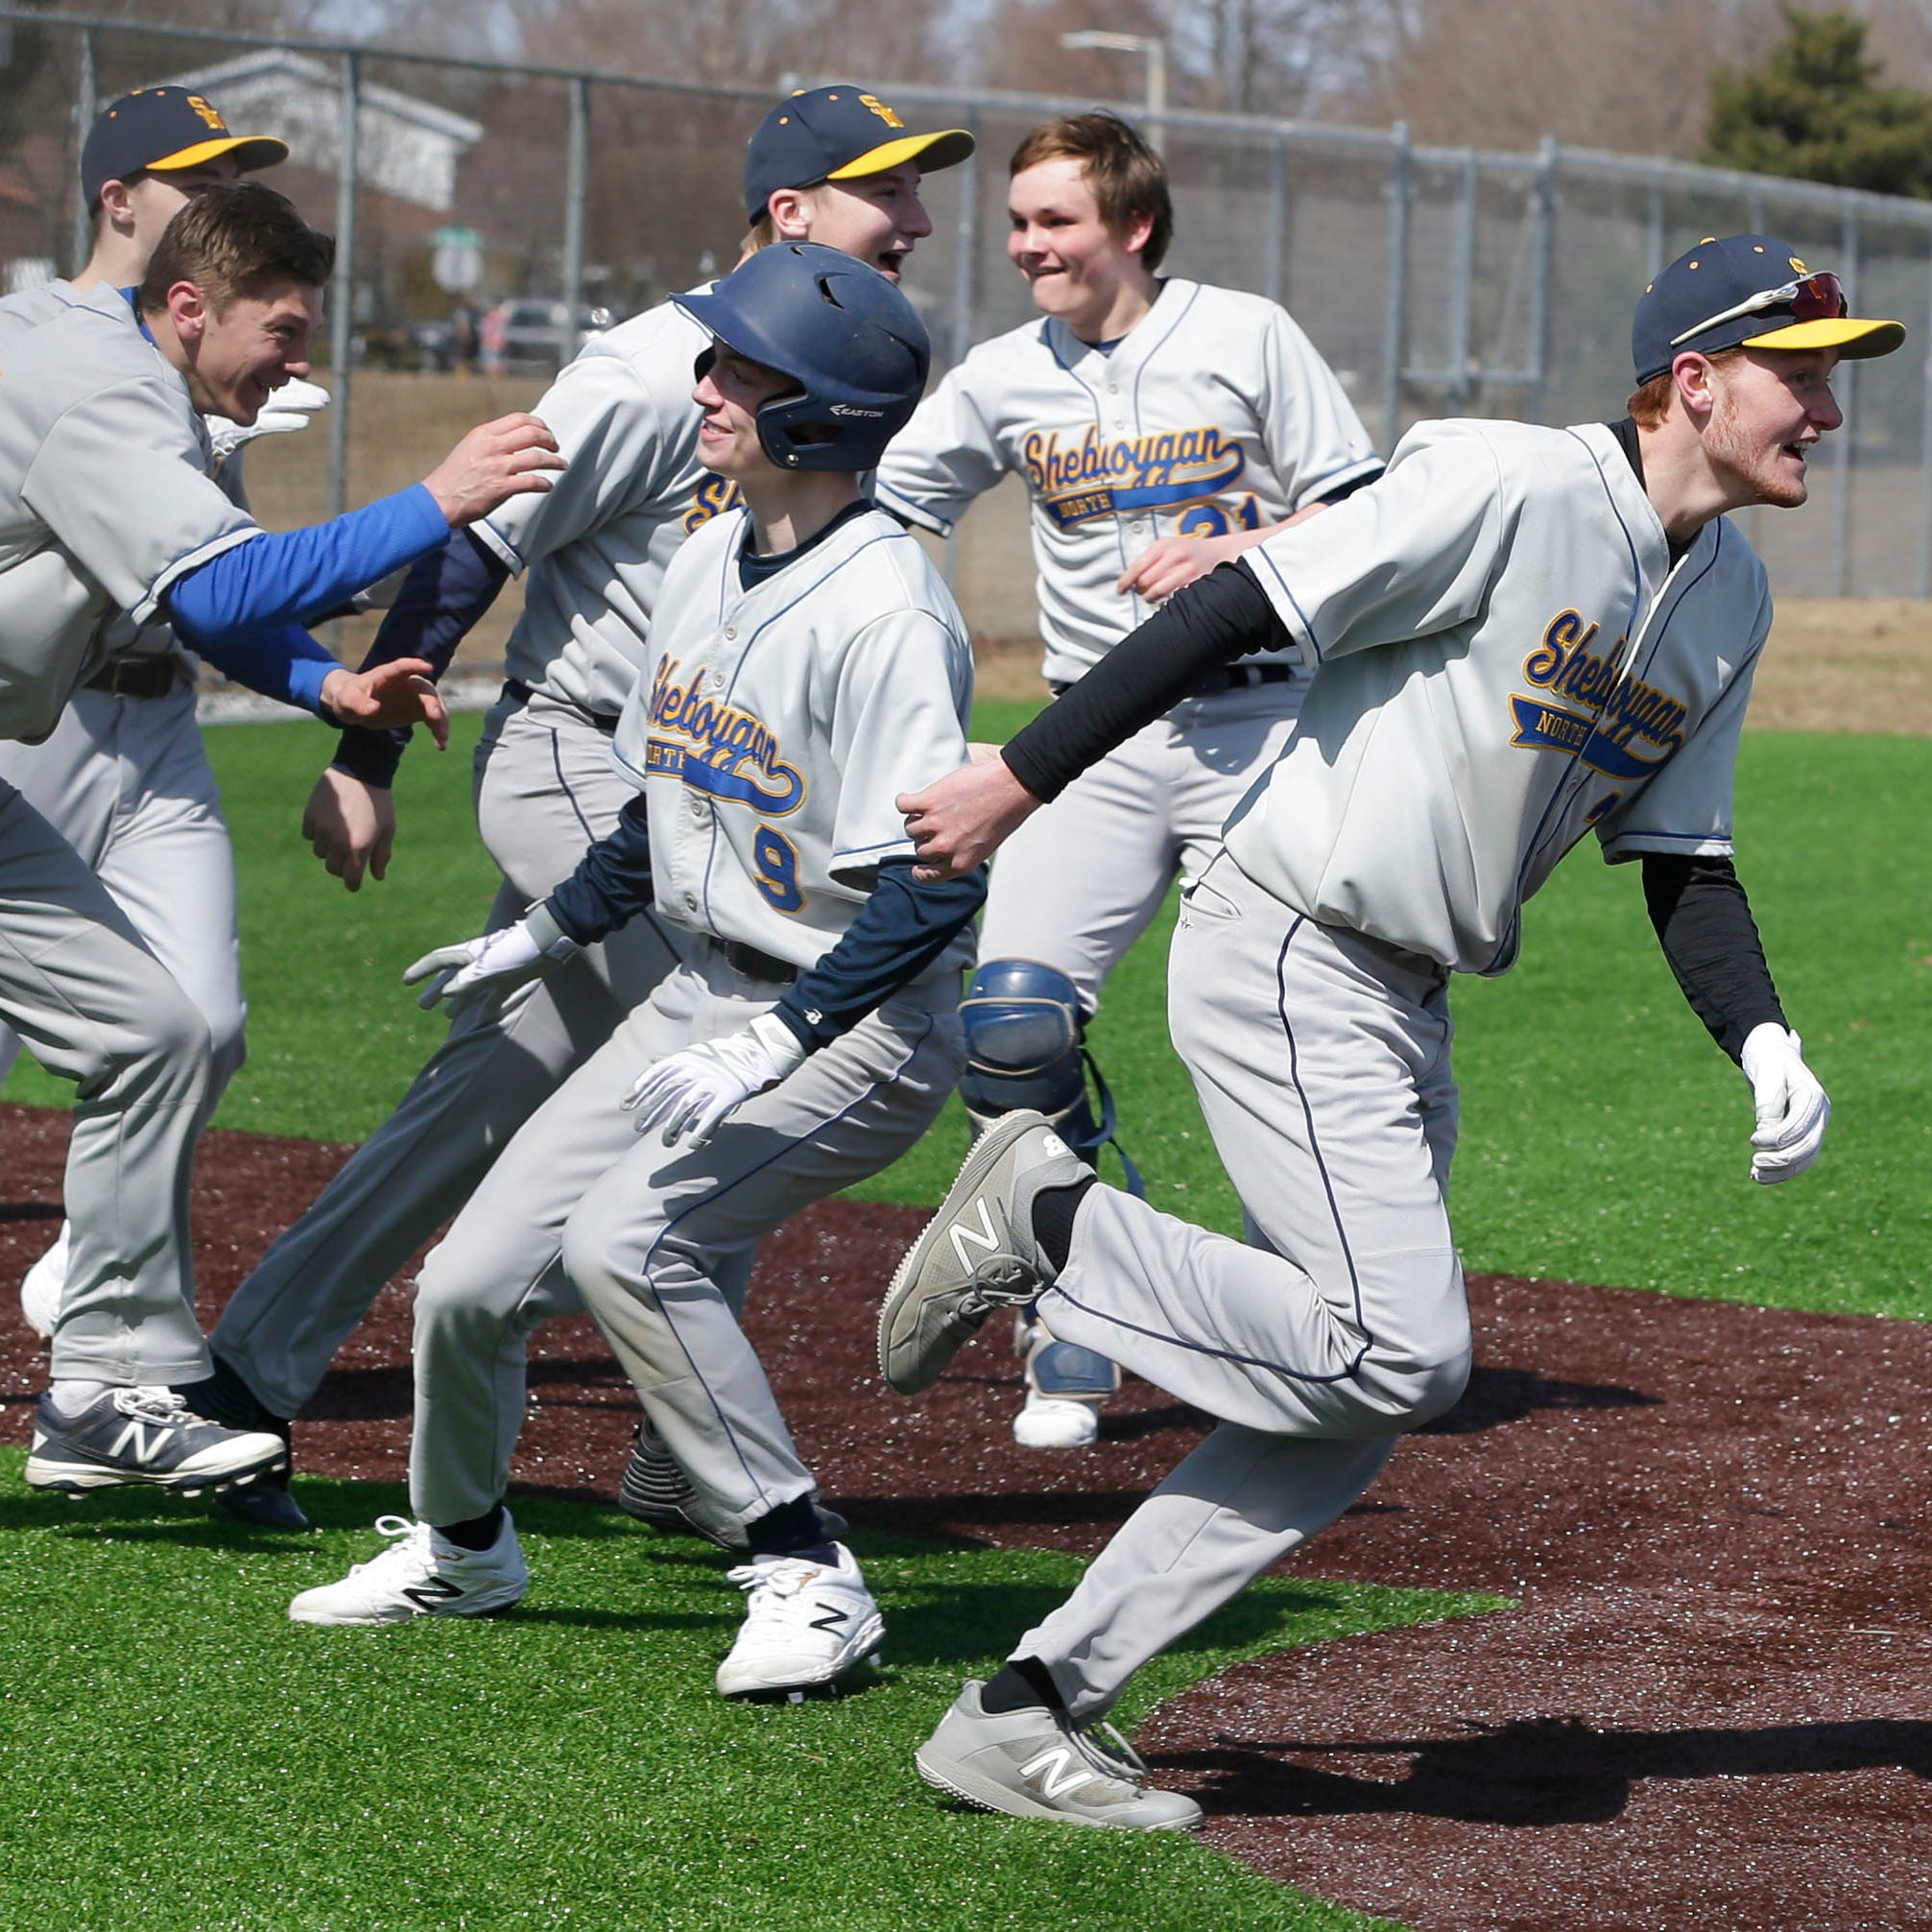 Sheboygan North goes from being no-hit to 9-run, walk-off win team will 'remember forever'